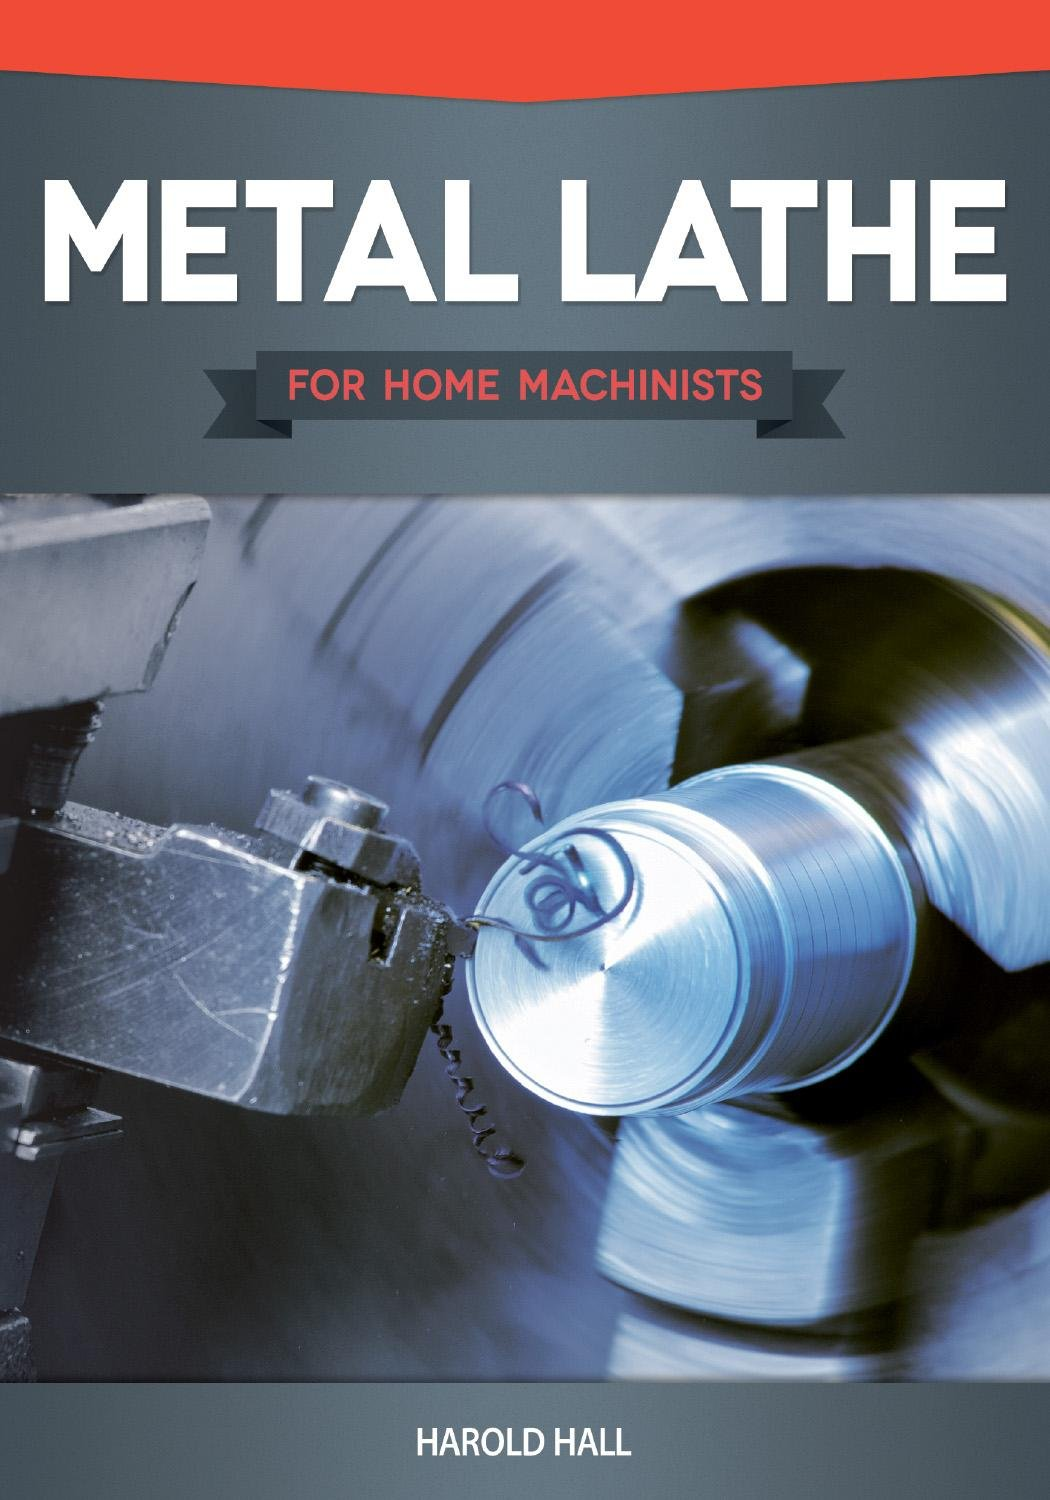 Metal Lathe for Home Machinists (Fox Chapel Publishing) Project-Based Course, Reference Guide, & Complete Introduction to Metalworking with a Lathe, Including 12 Skill-Building Lathe Turning Projects